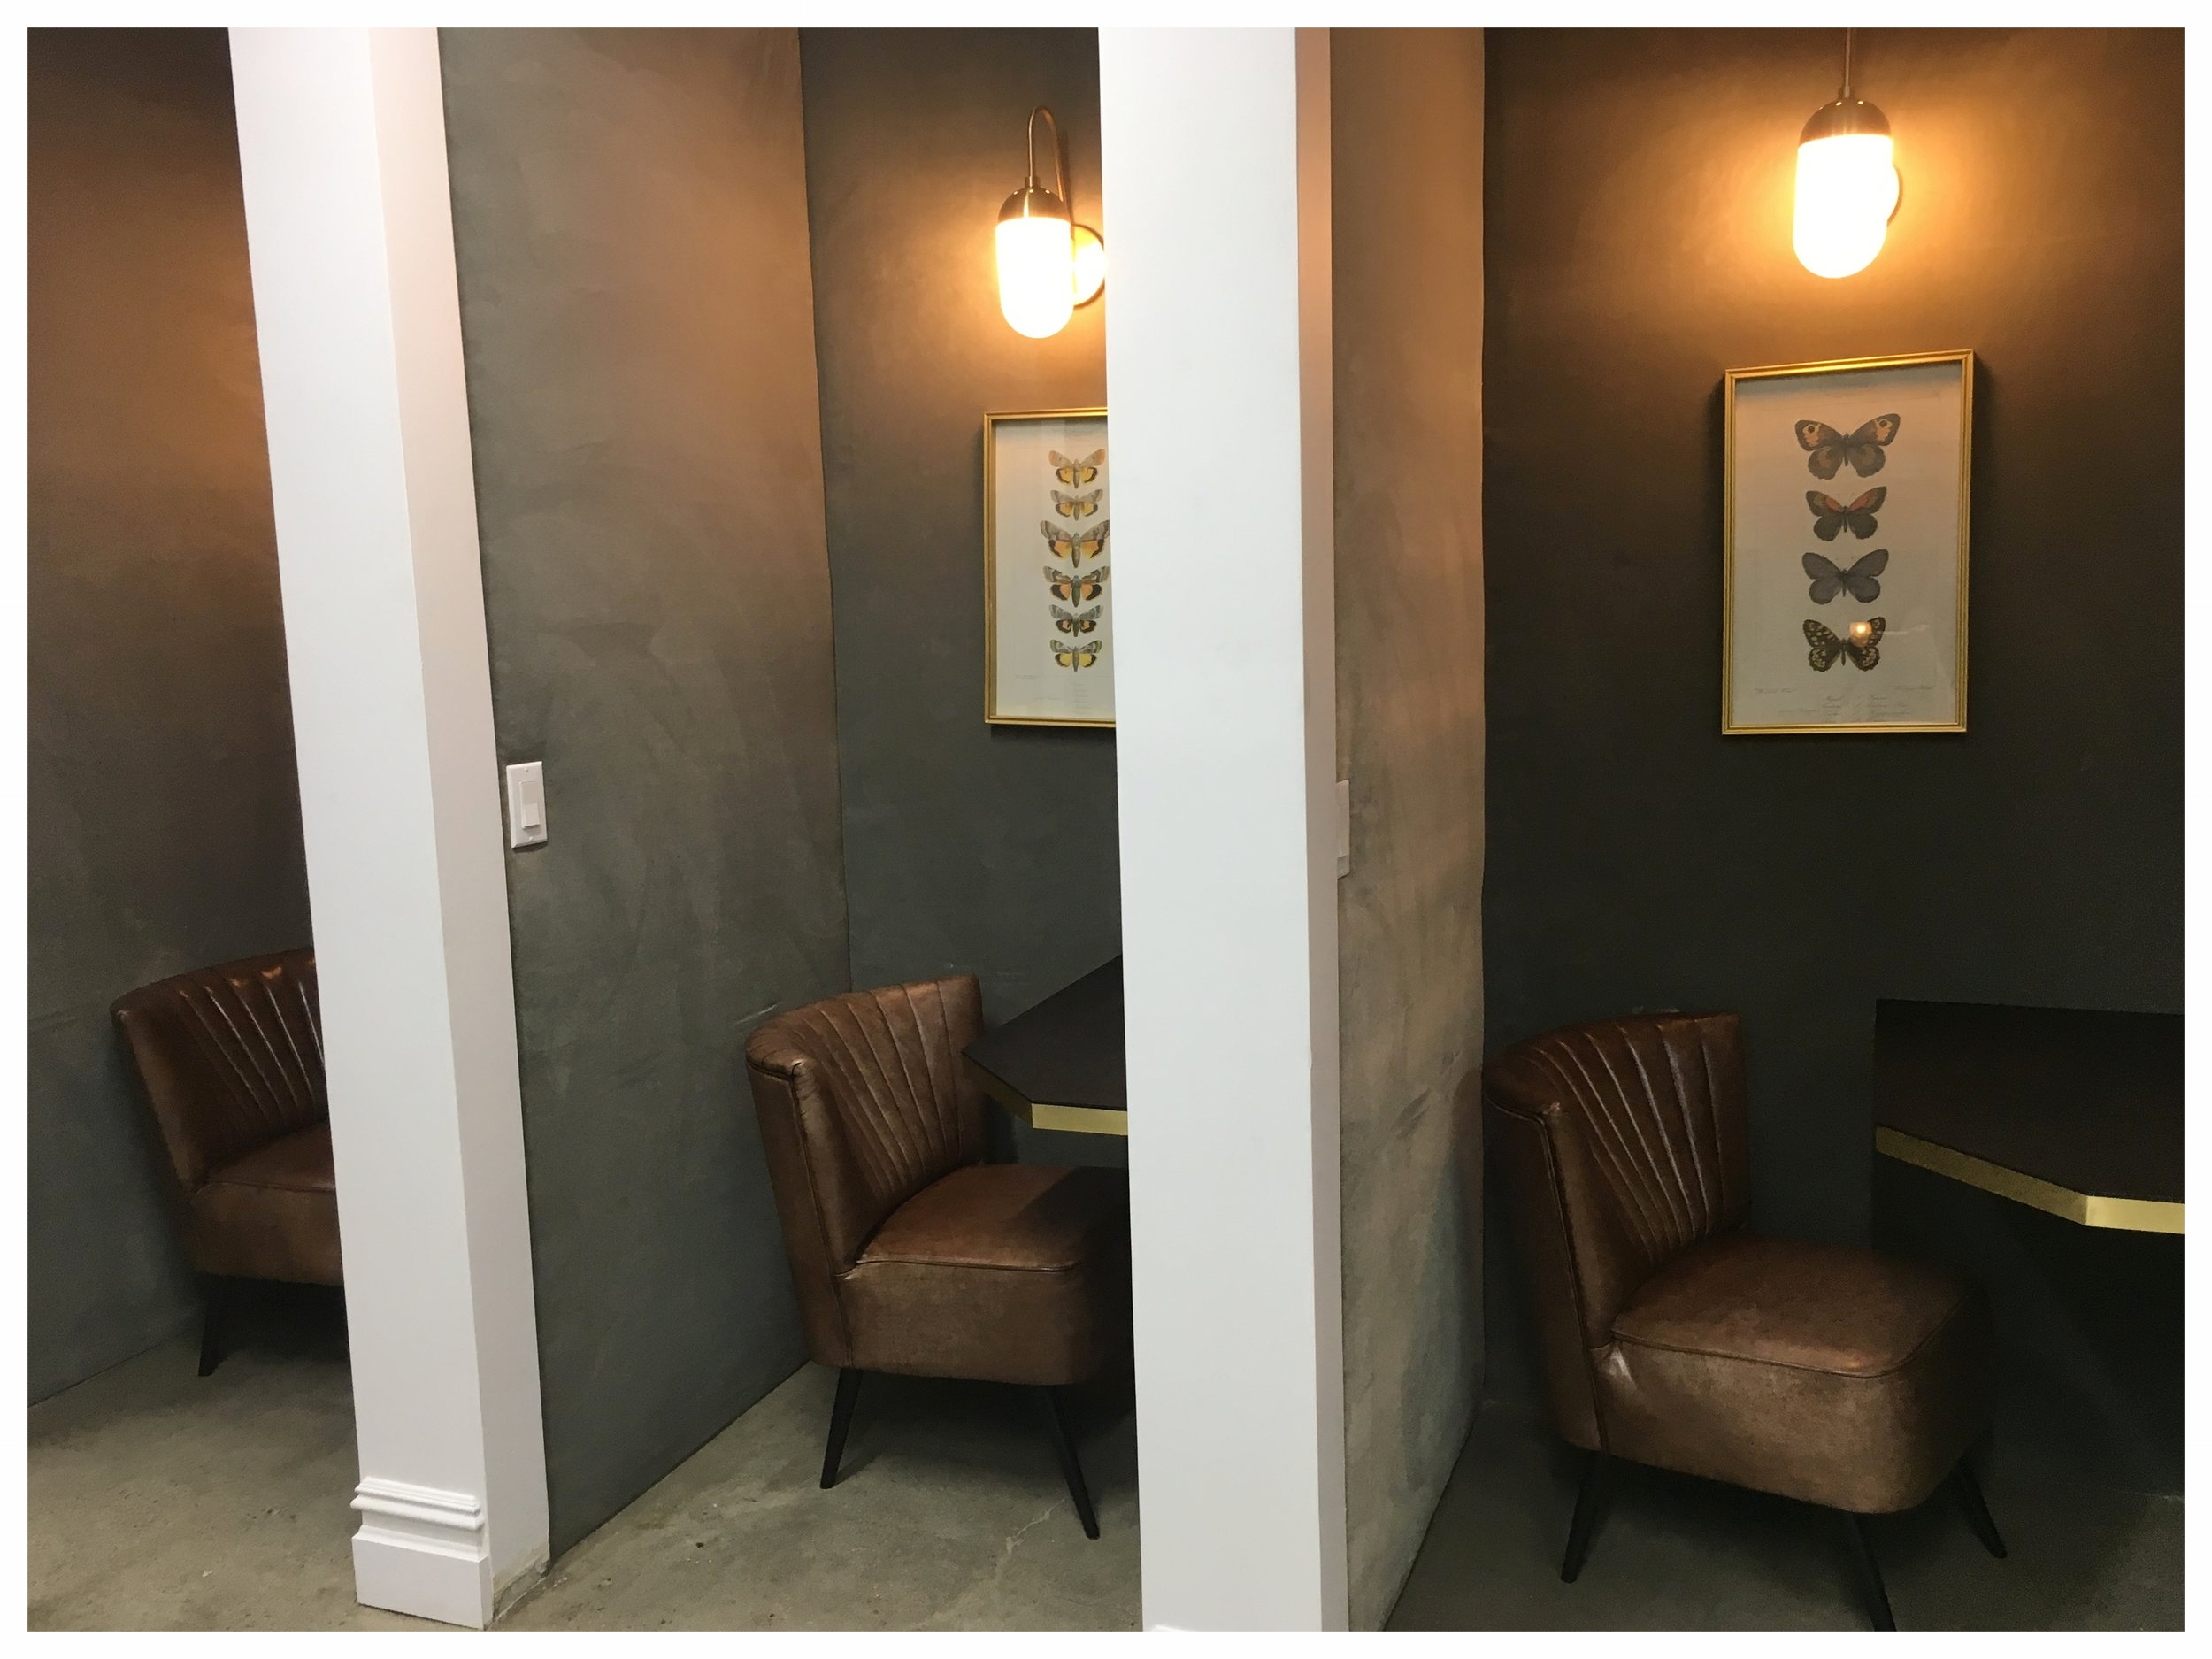 Fig 4A: Phone booths (glass doors to come) near the front desk.